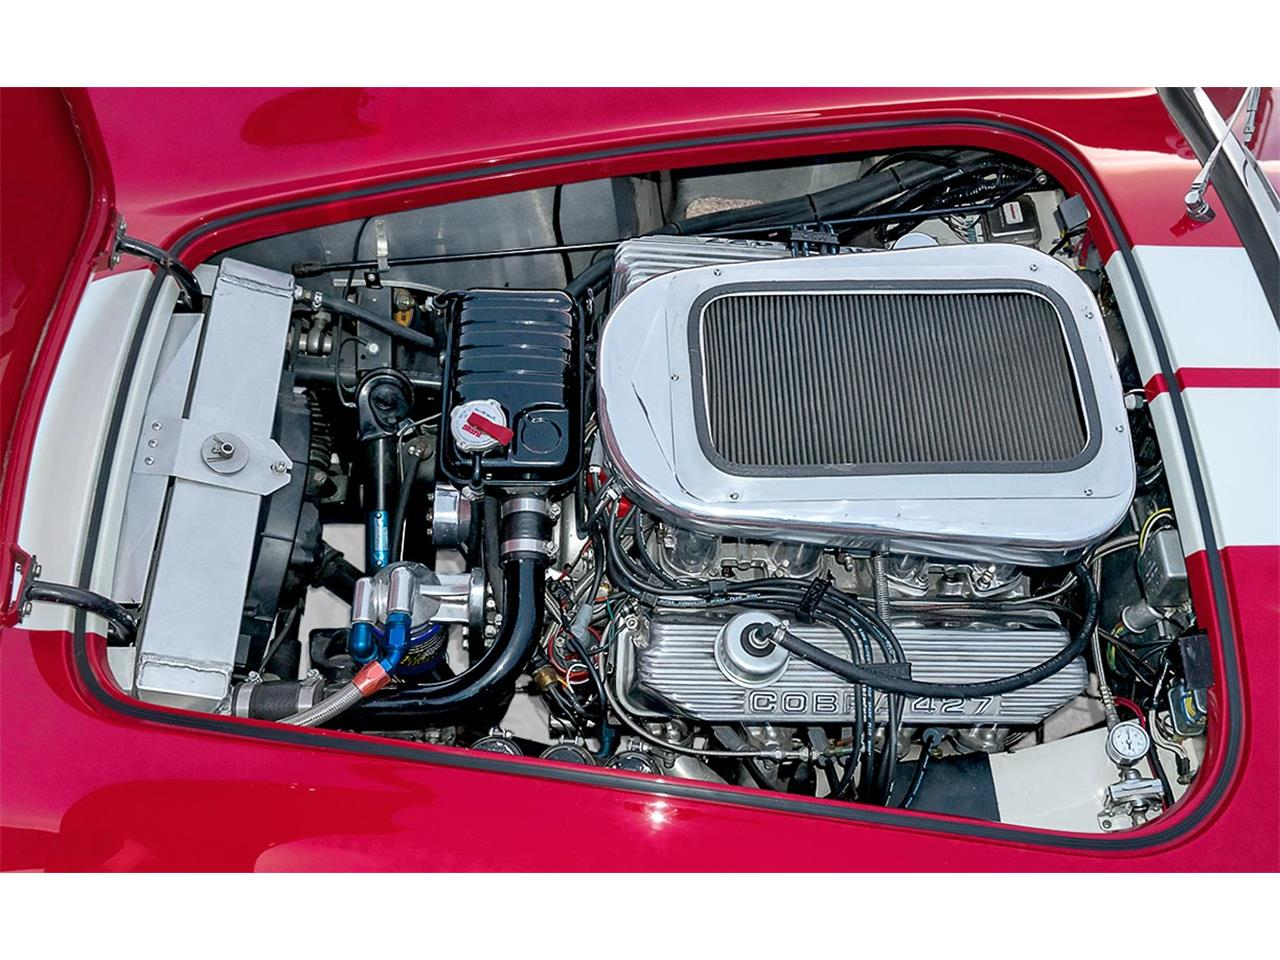 Large Picture of Classic 1965 Cobra located in Irvine California - $124,900.00 Offered by a Private Seller - OEYU